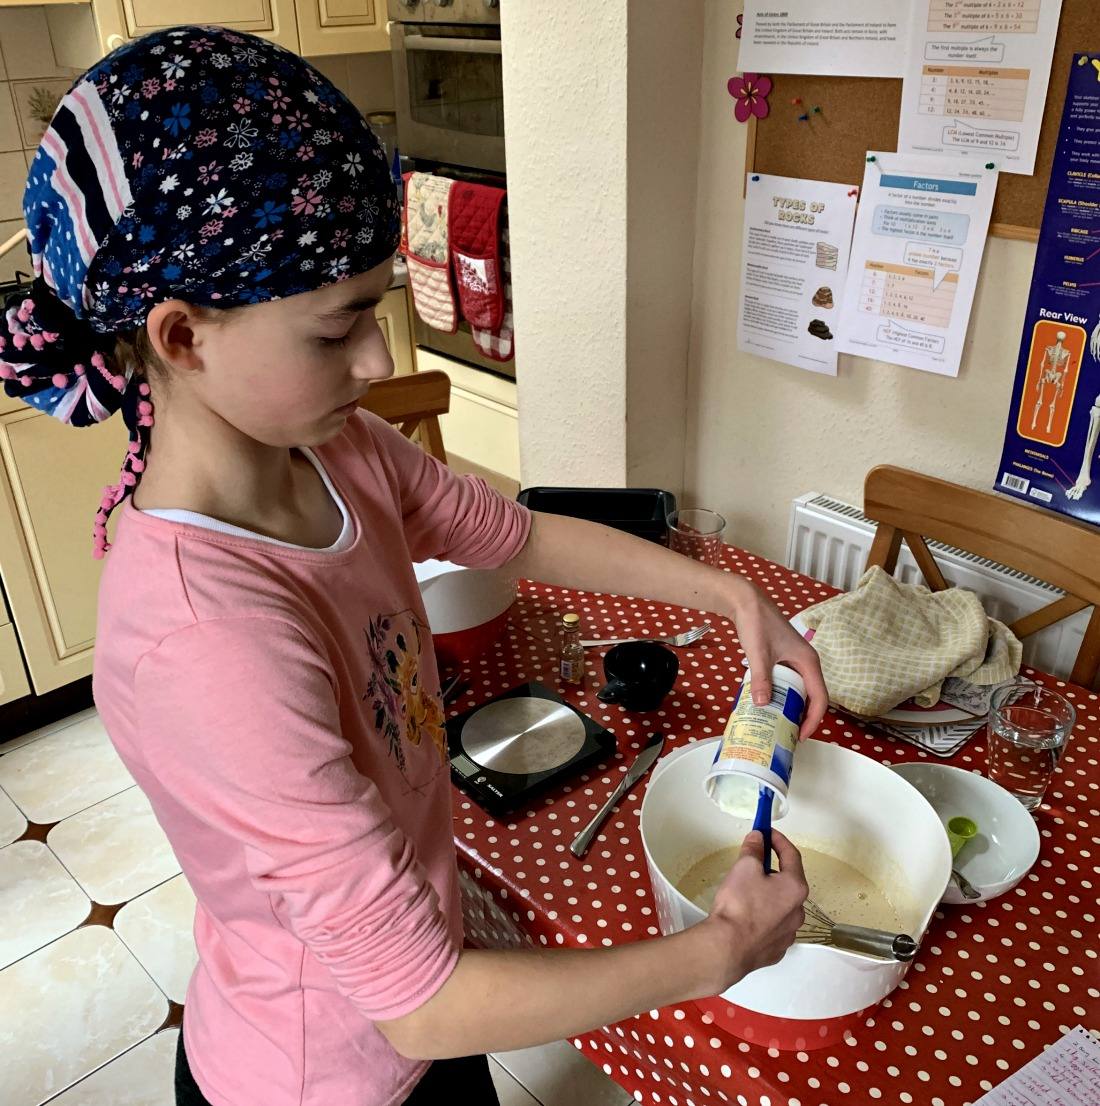 buttermilk rusks ofamily learning together